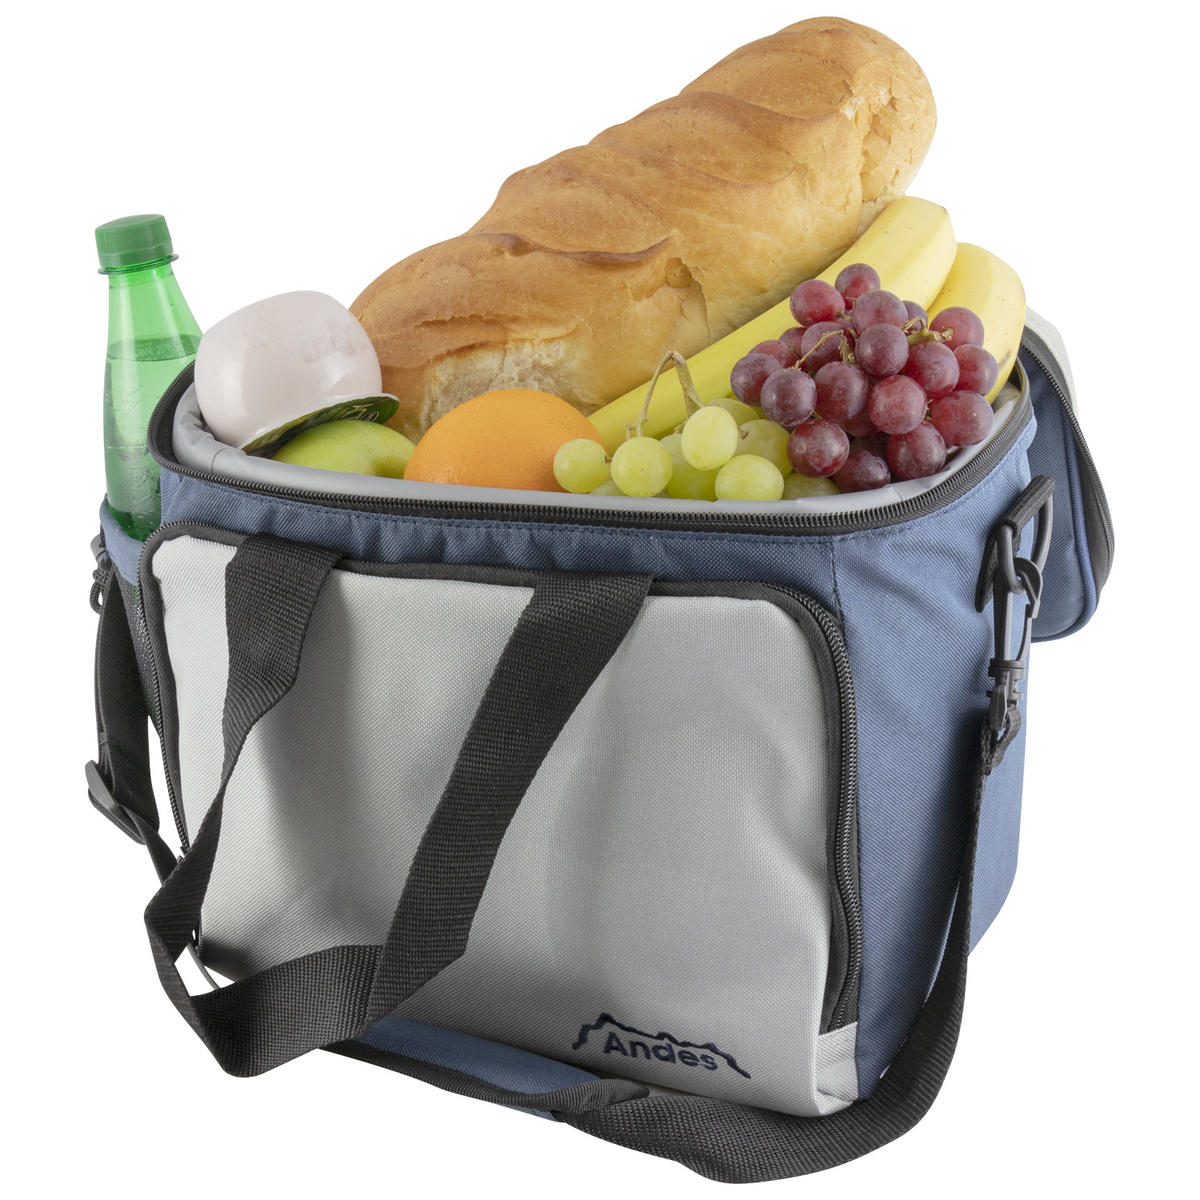 Andes Small Deluxe Cooler Bag